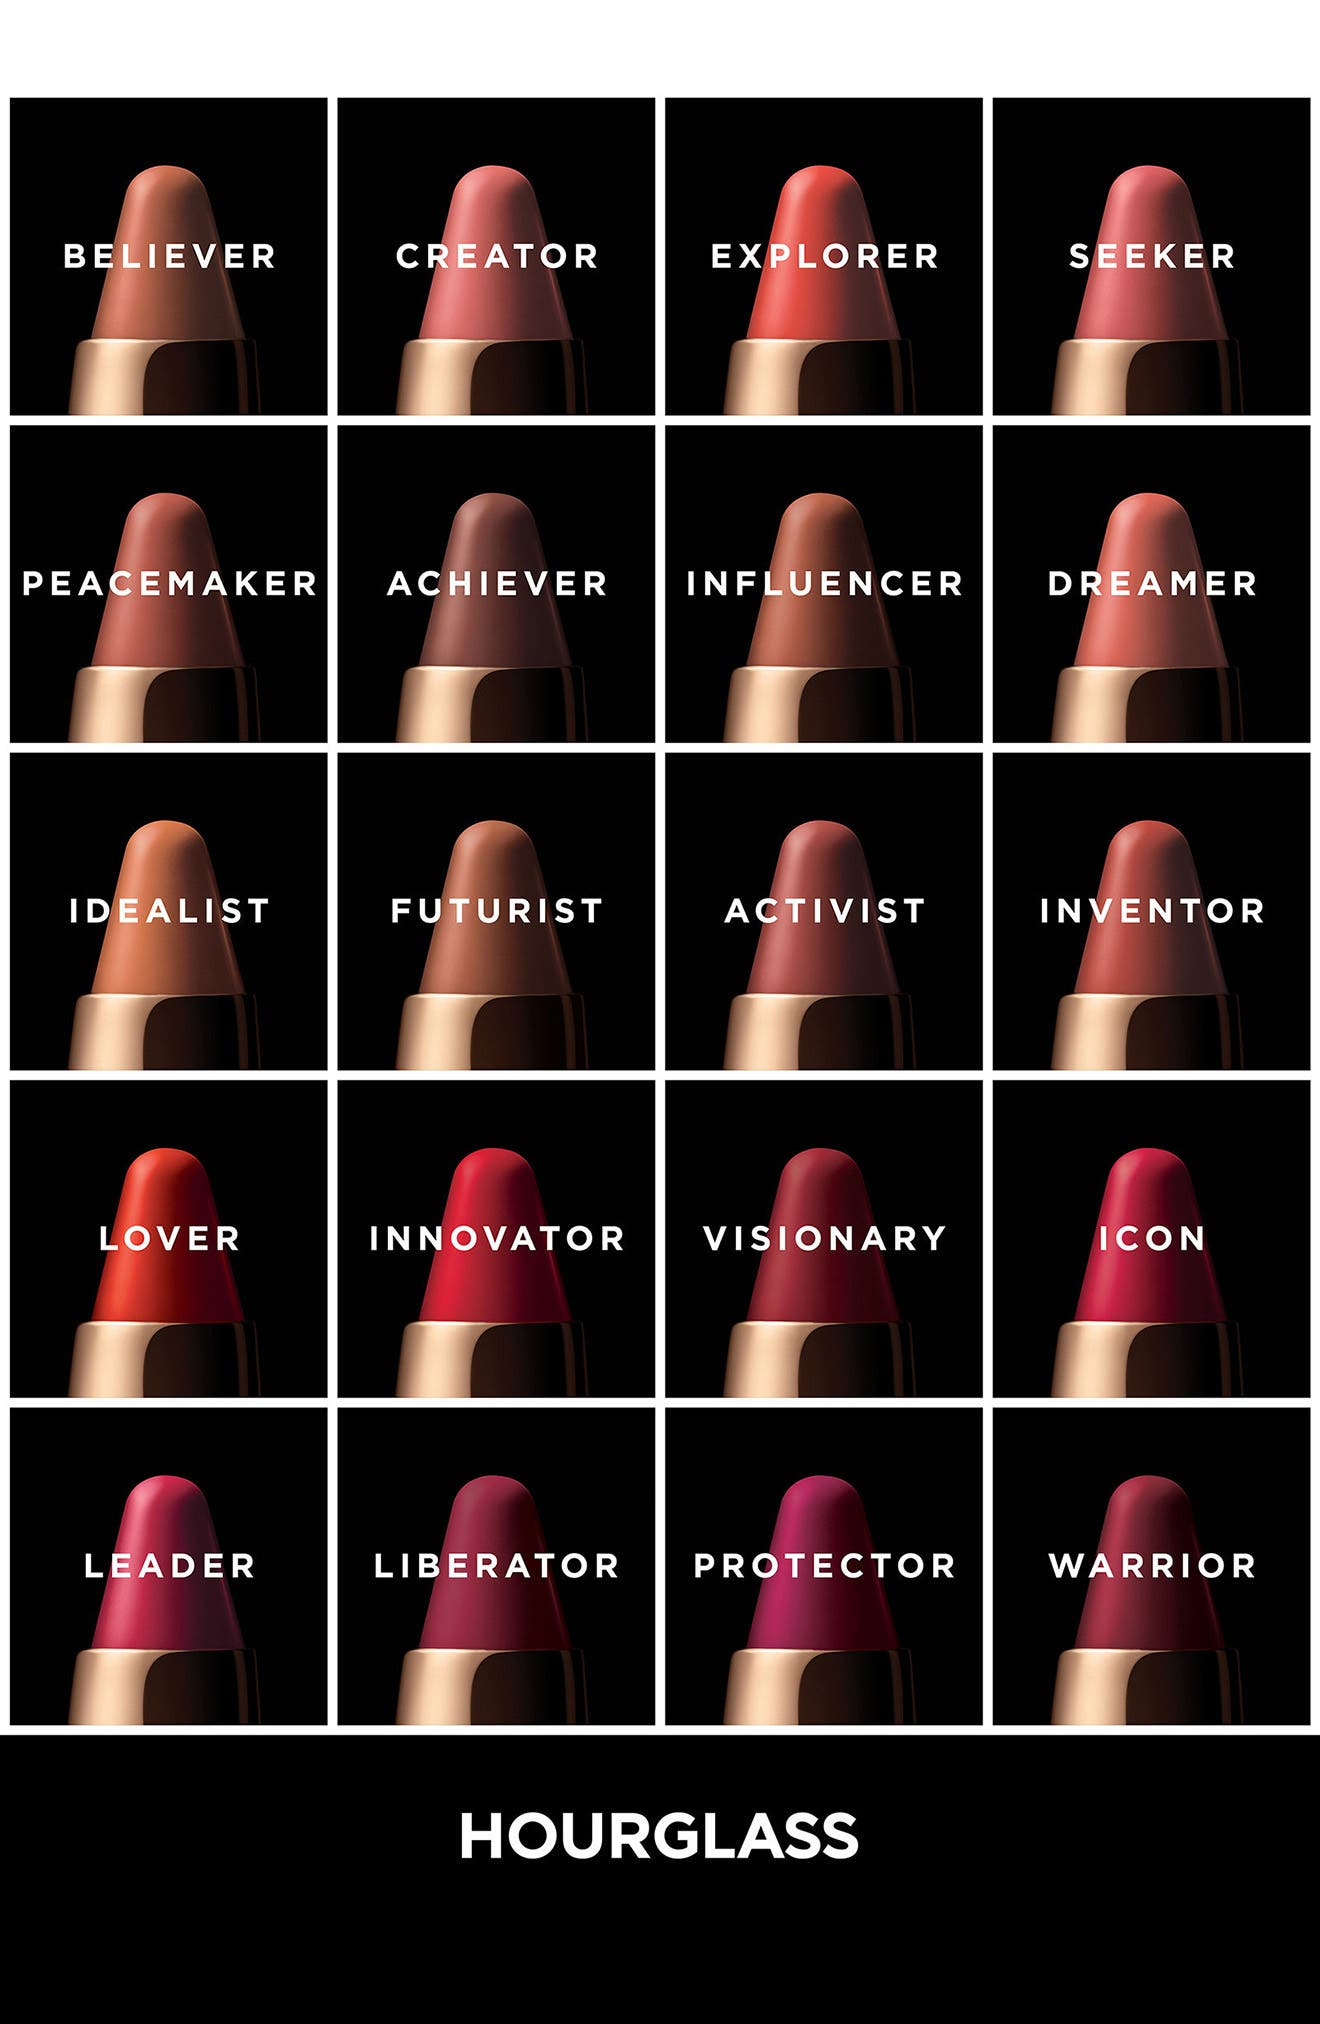 Girl Lip Stylo,                             Alternate thumbnail 2, color,                             PEACEMAKER